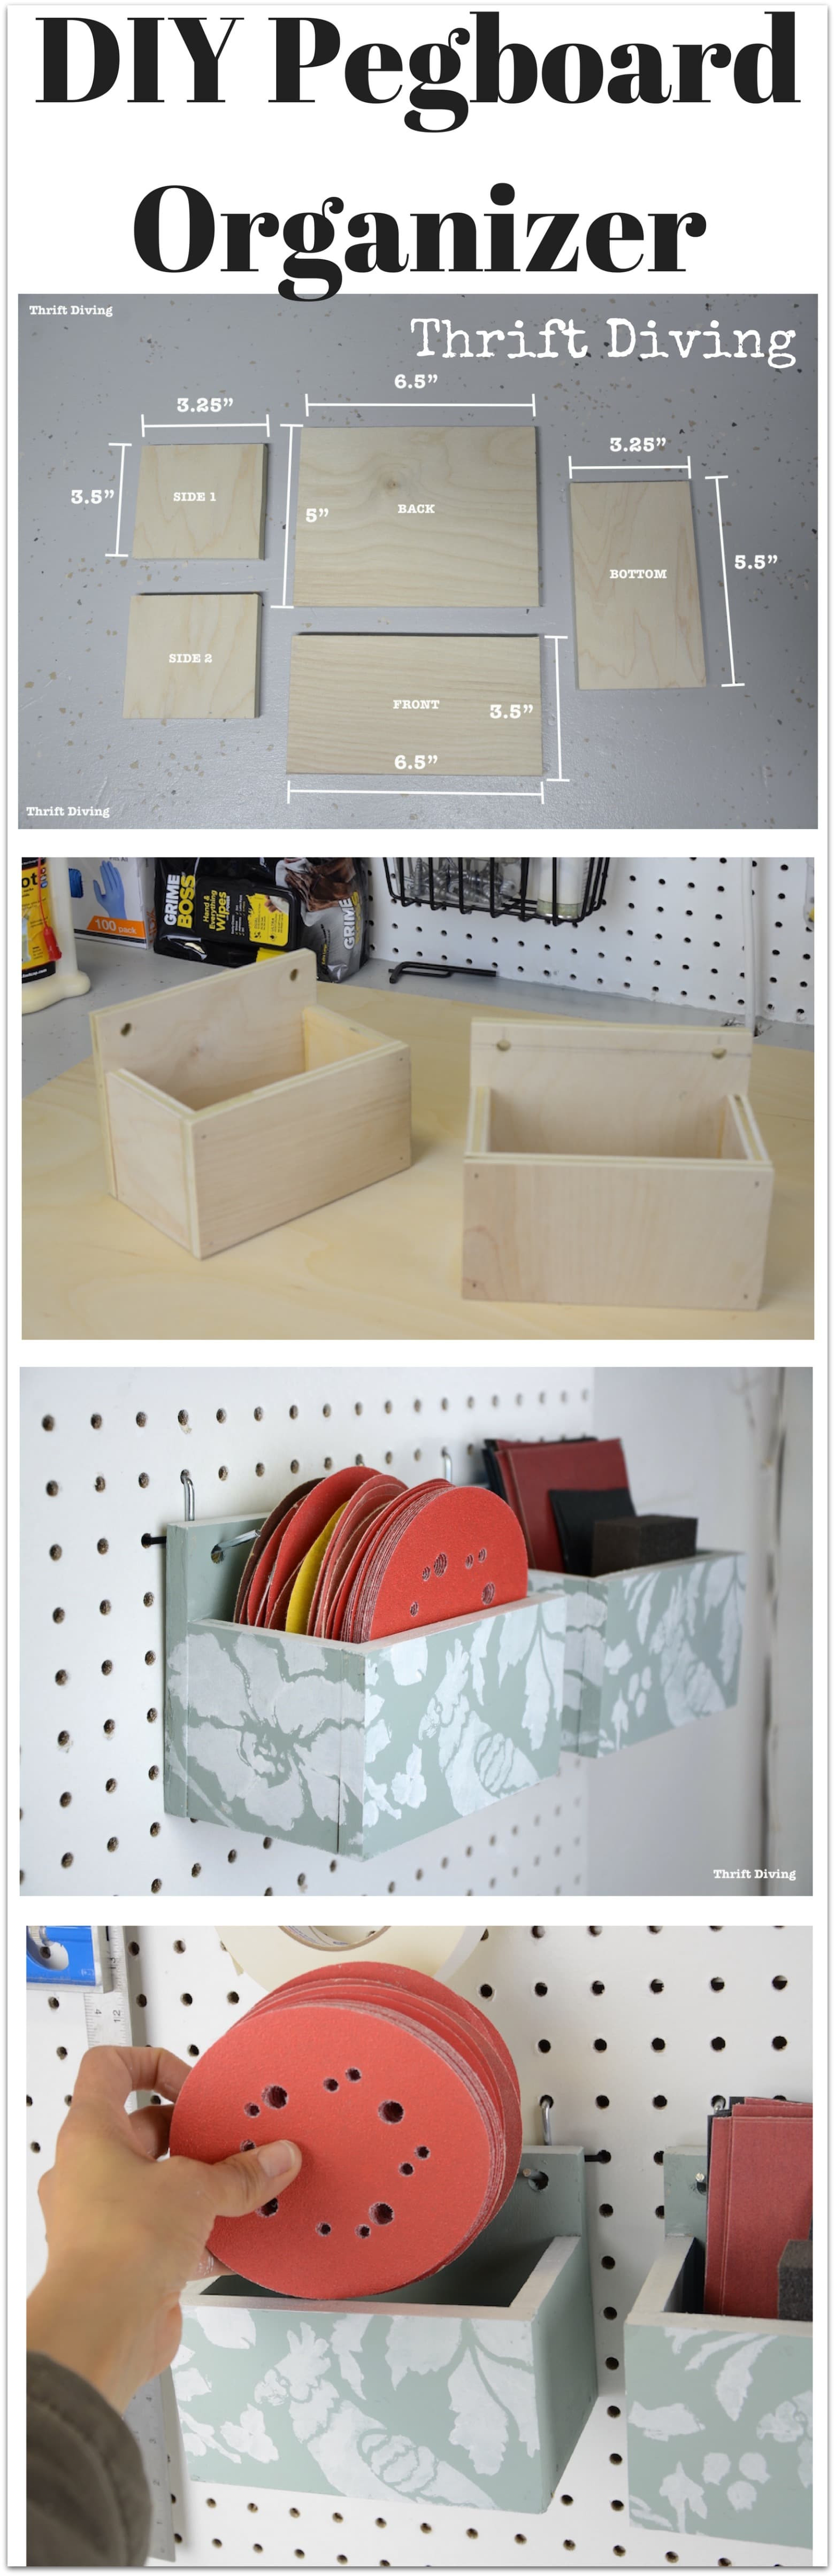 Best ideas about DIY Pegboard Tool Organizer . Save or Pin How to Make a DIY Pegboard Organizer For Your Garage or Now.